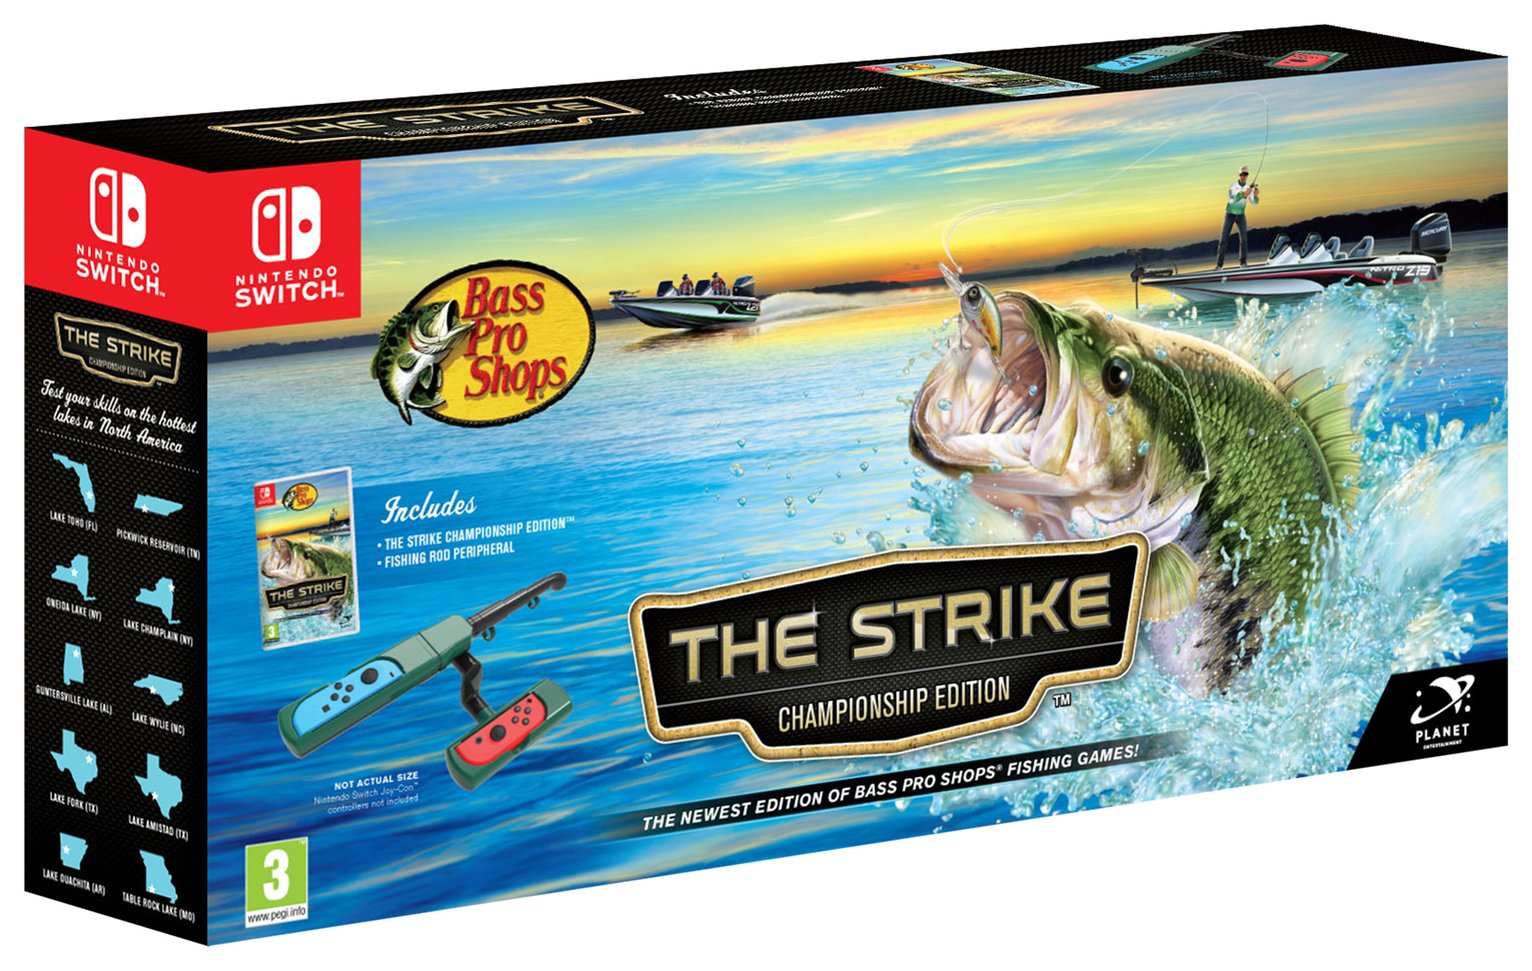 Bass Pro Shops: The Strike Championship Nintendo Switch Game review